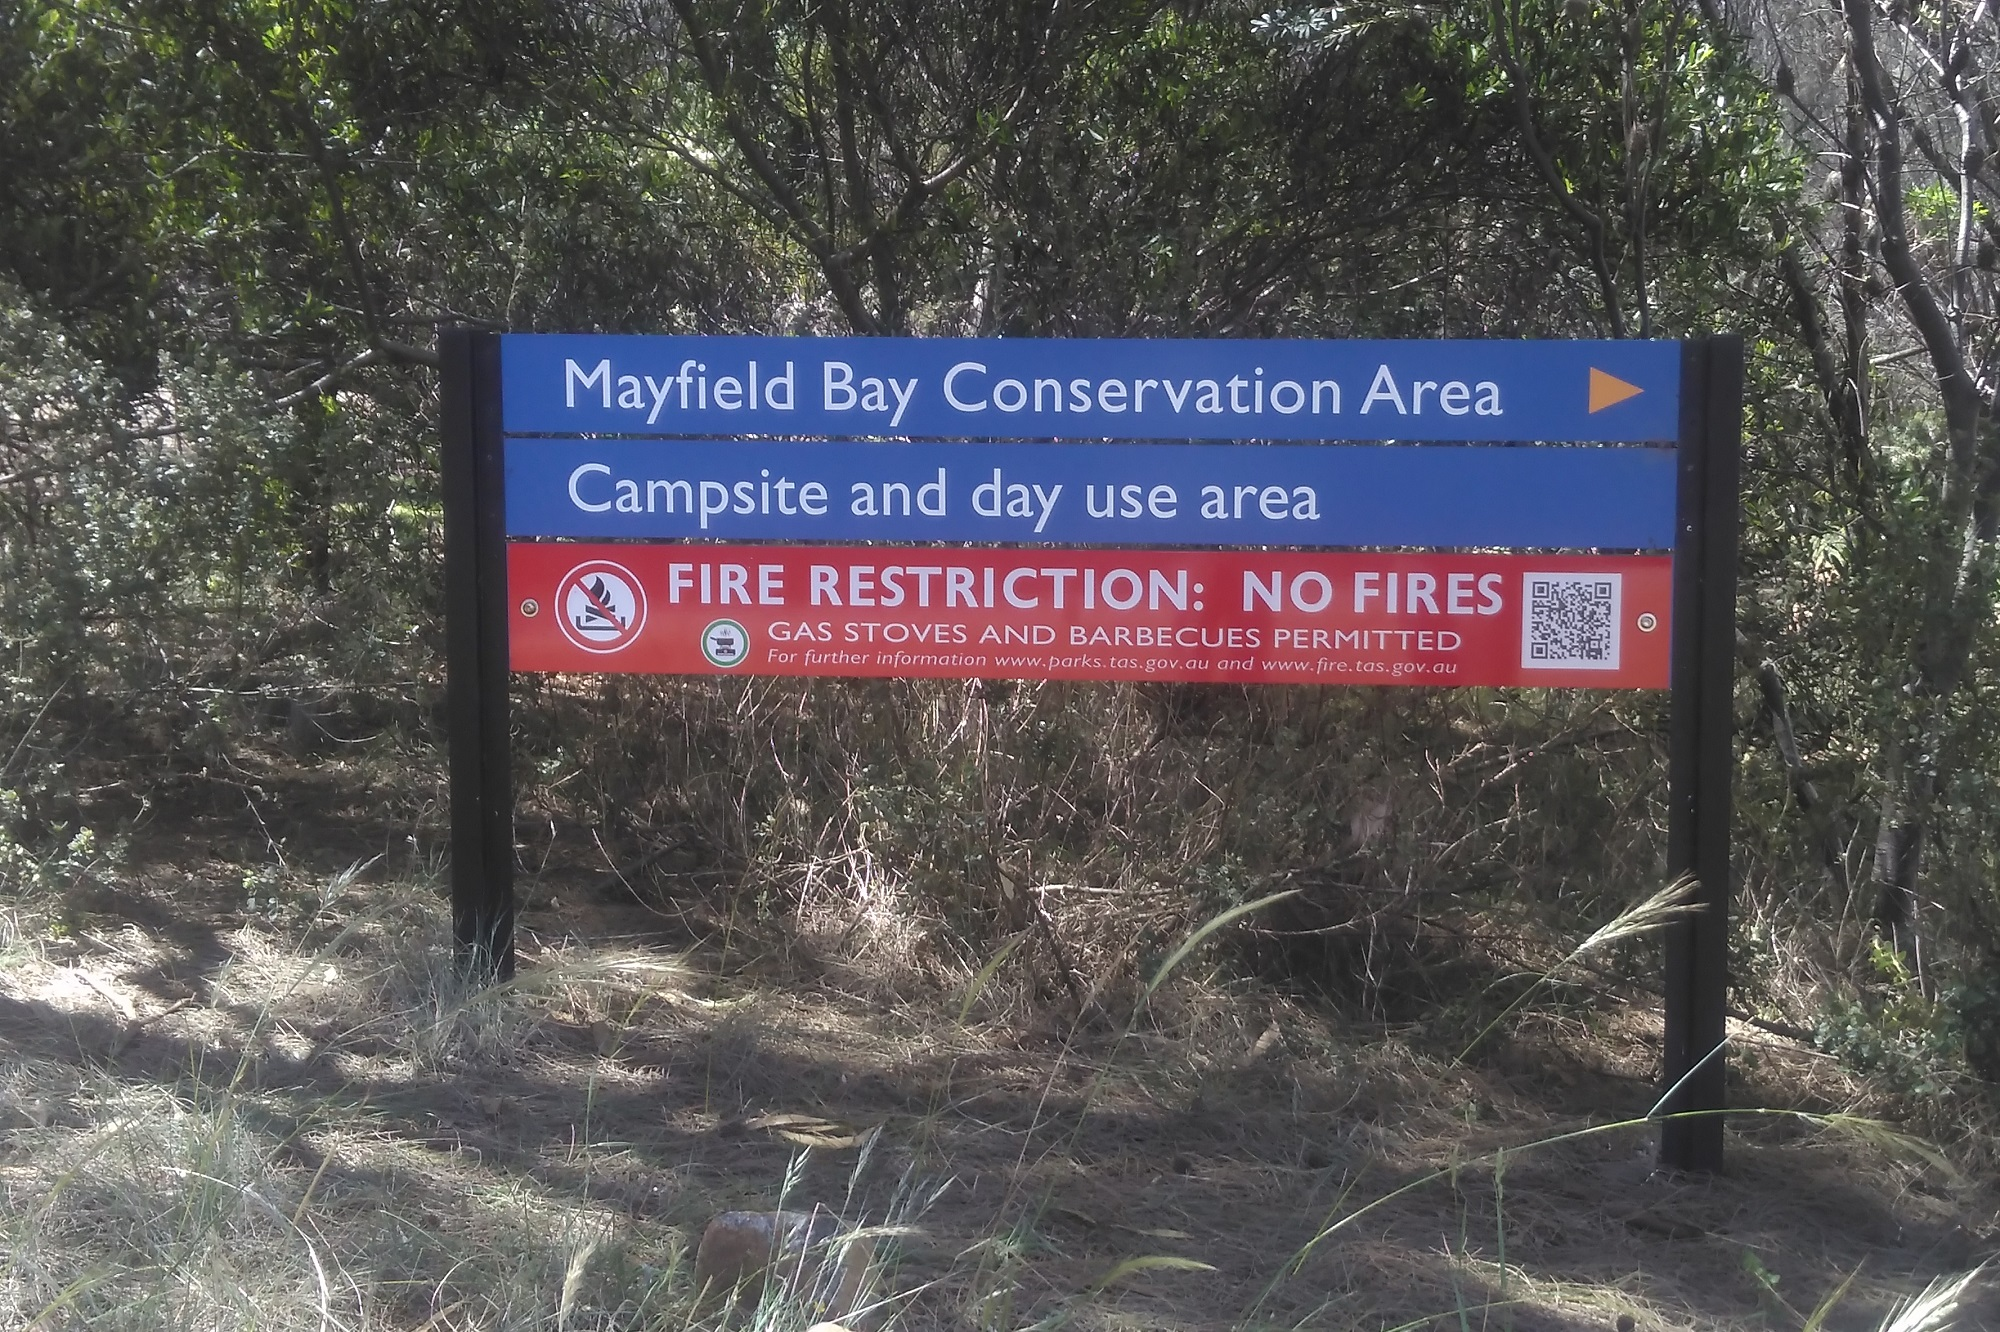 No fires - campground signage